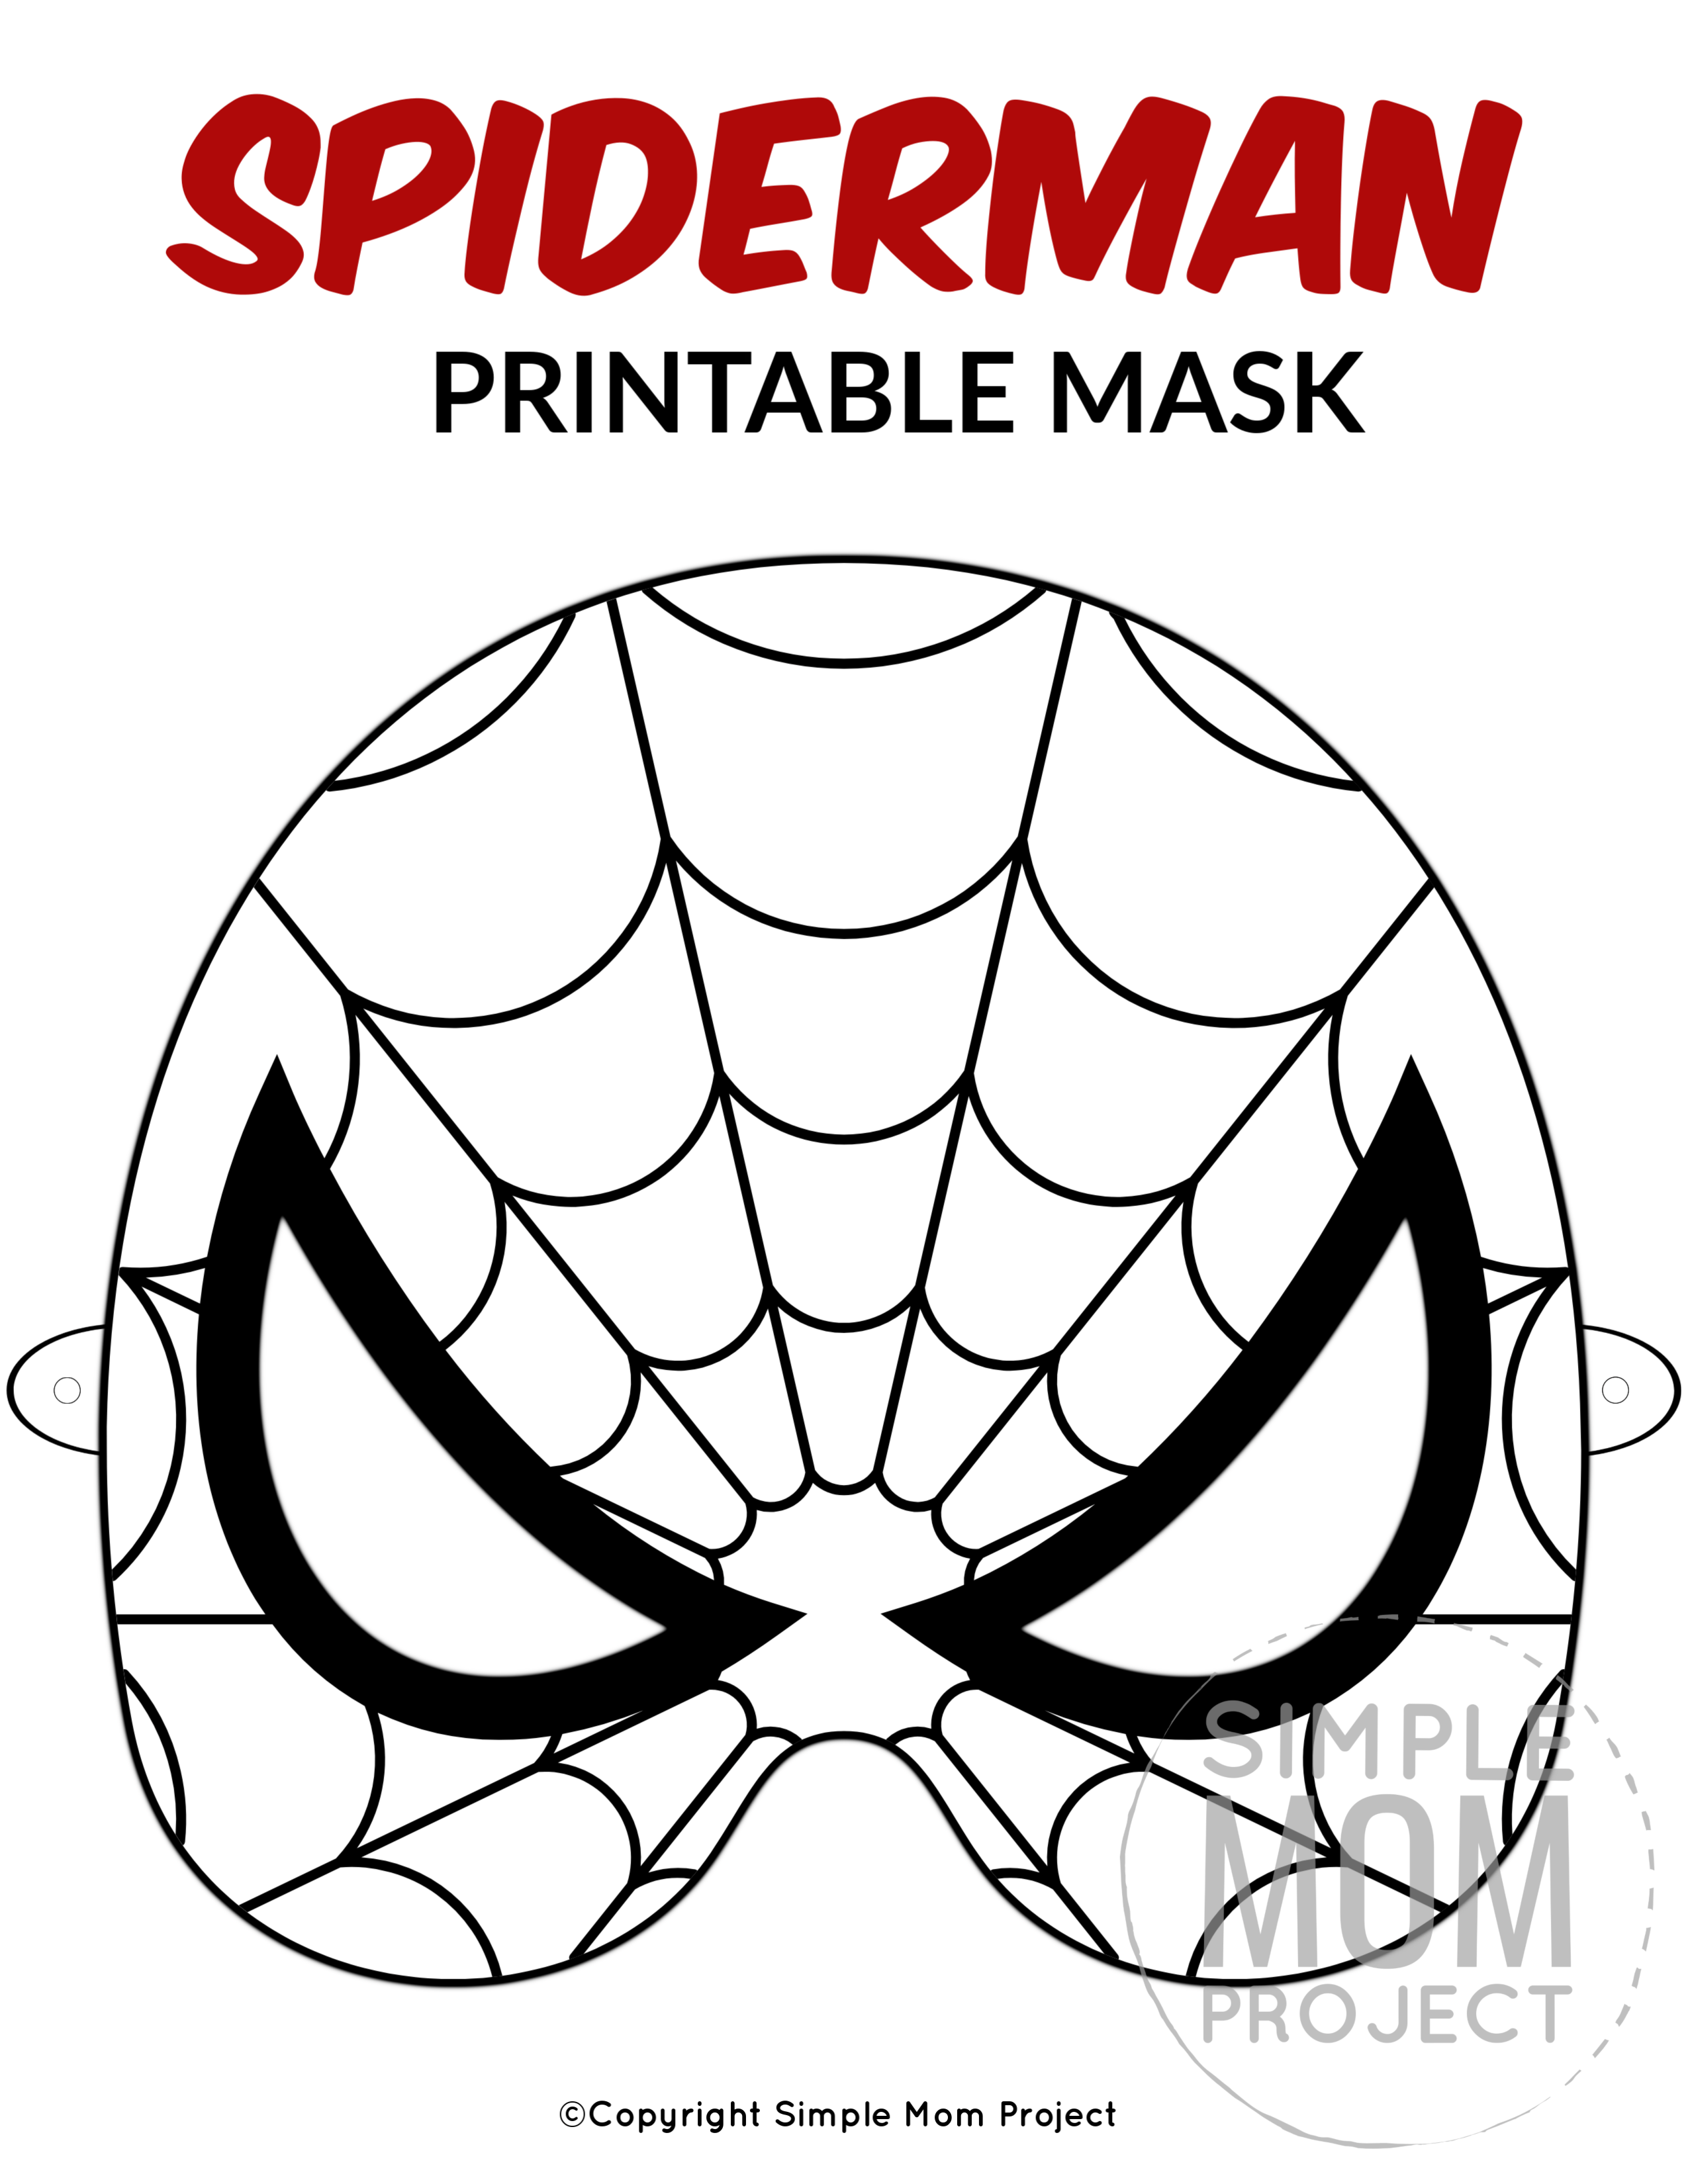 Planning A Spider Man Superhero Party But On A Tight Budget Let Us Help You Out With Our Free Printable Spid In 2020 Face Masks For Kids Mask For Kids Printable Masks